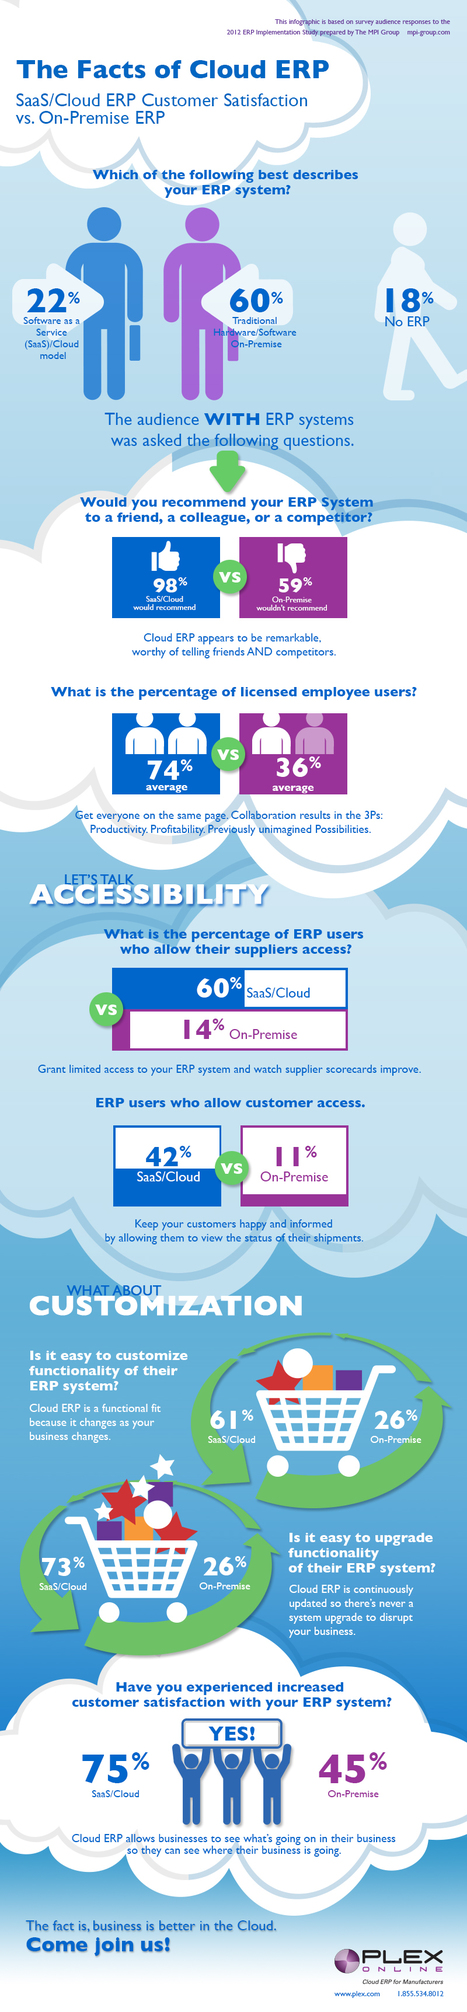 INFOGRAPHIC: The Facts Of Cloud ERP | Social Technology for Business | Scoop.it